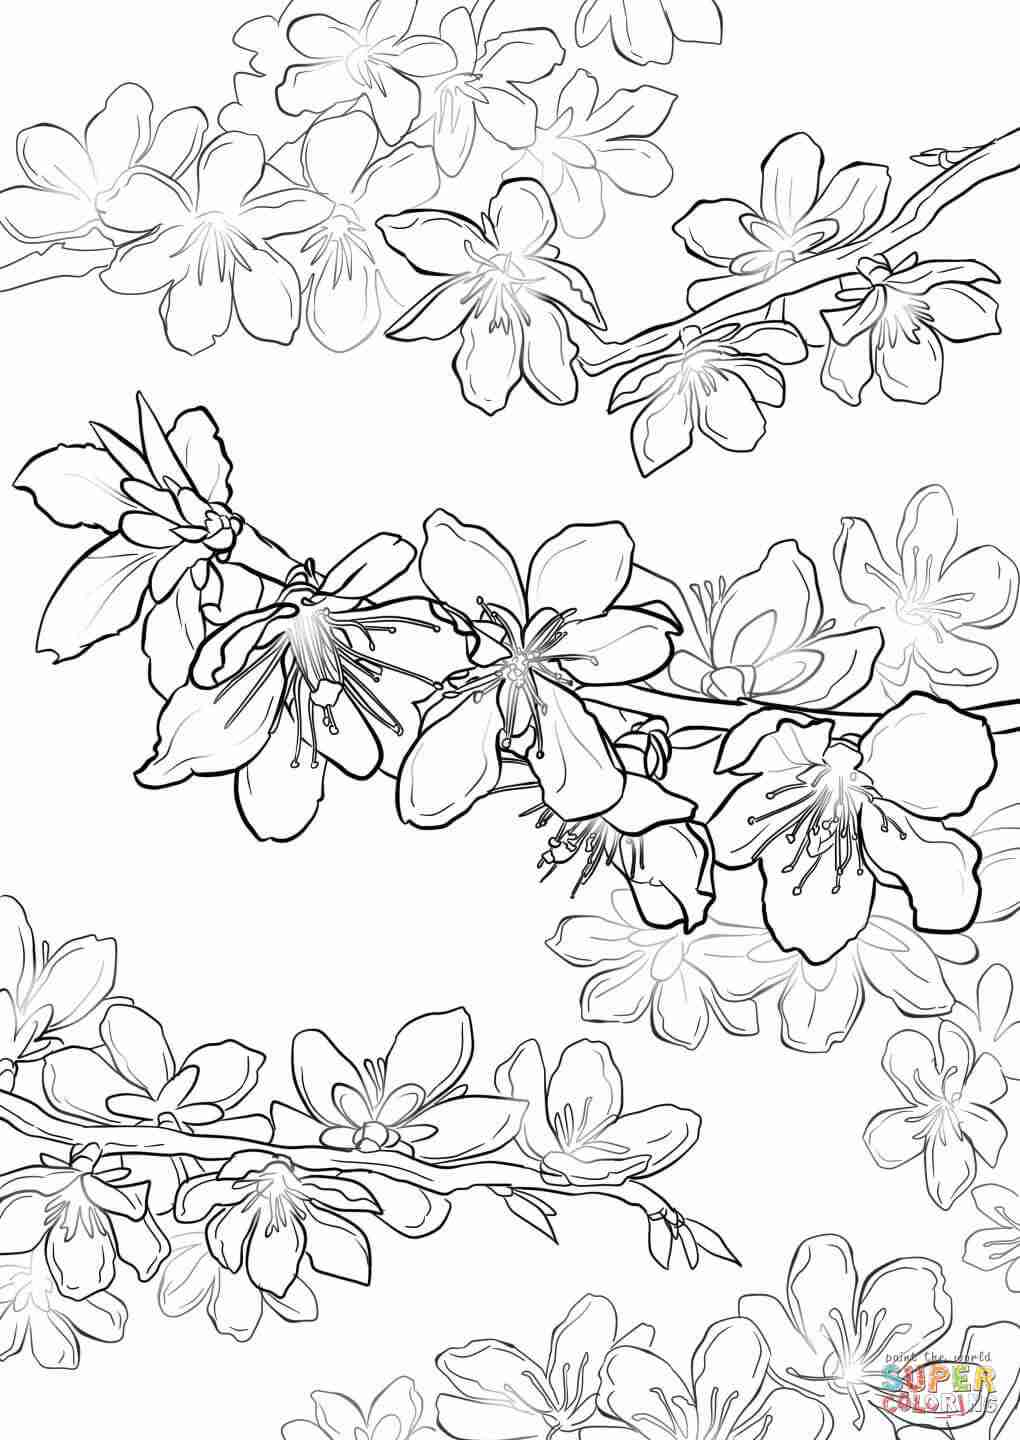 1020x1440 Cherry Blossom Japan Coloring Pages For Adults Justcolor Beautiful